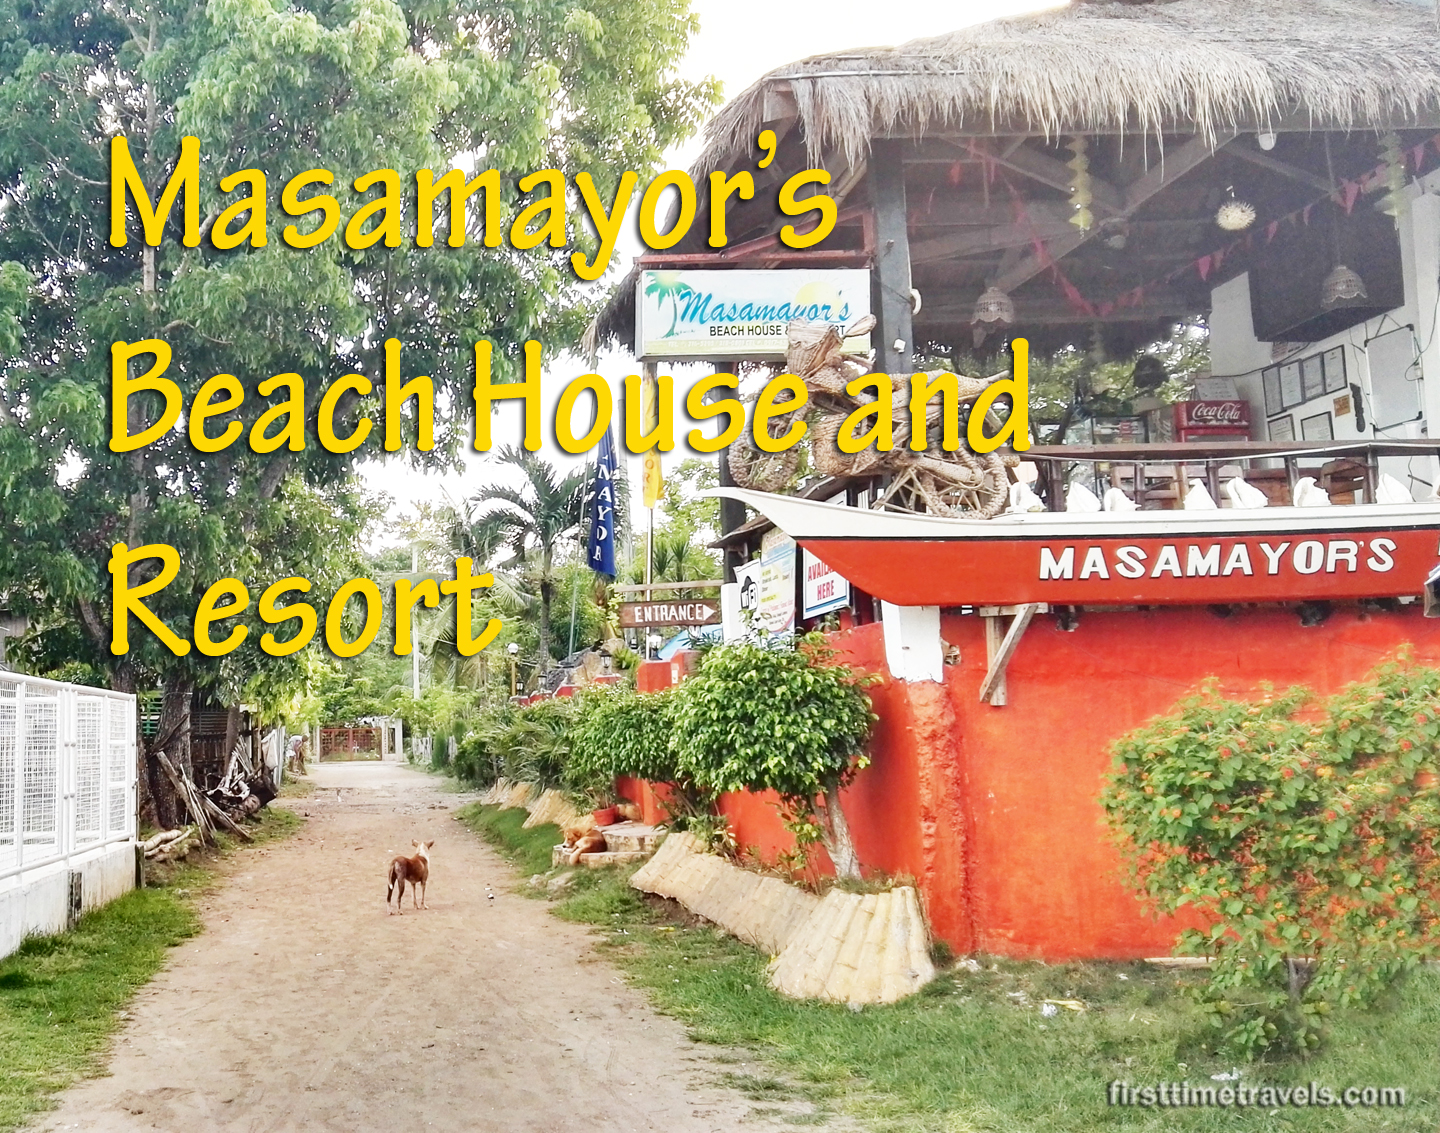 Masamayor's Beach House and Resort